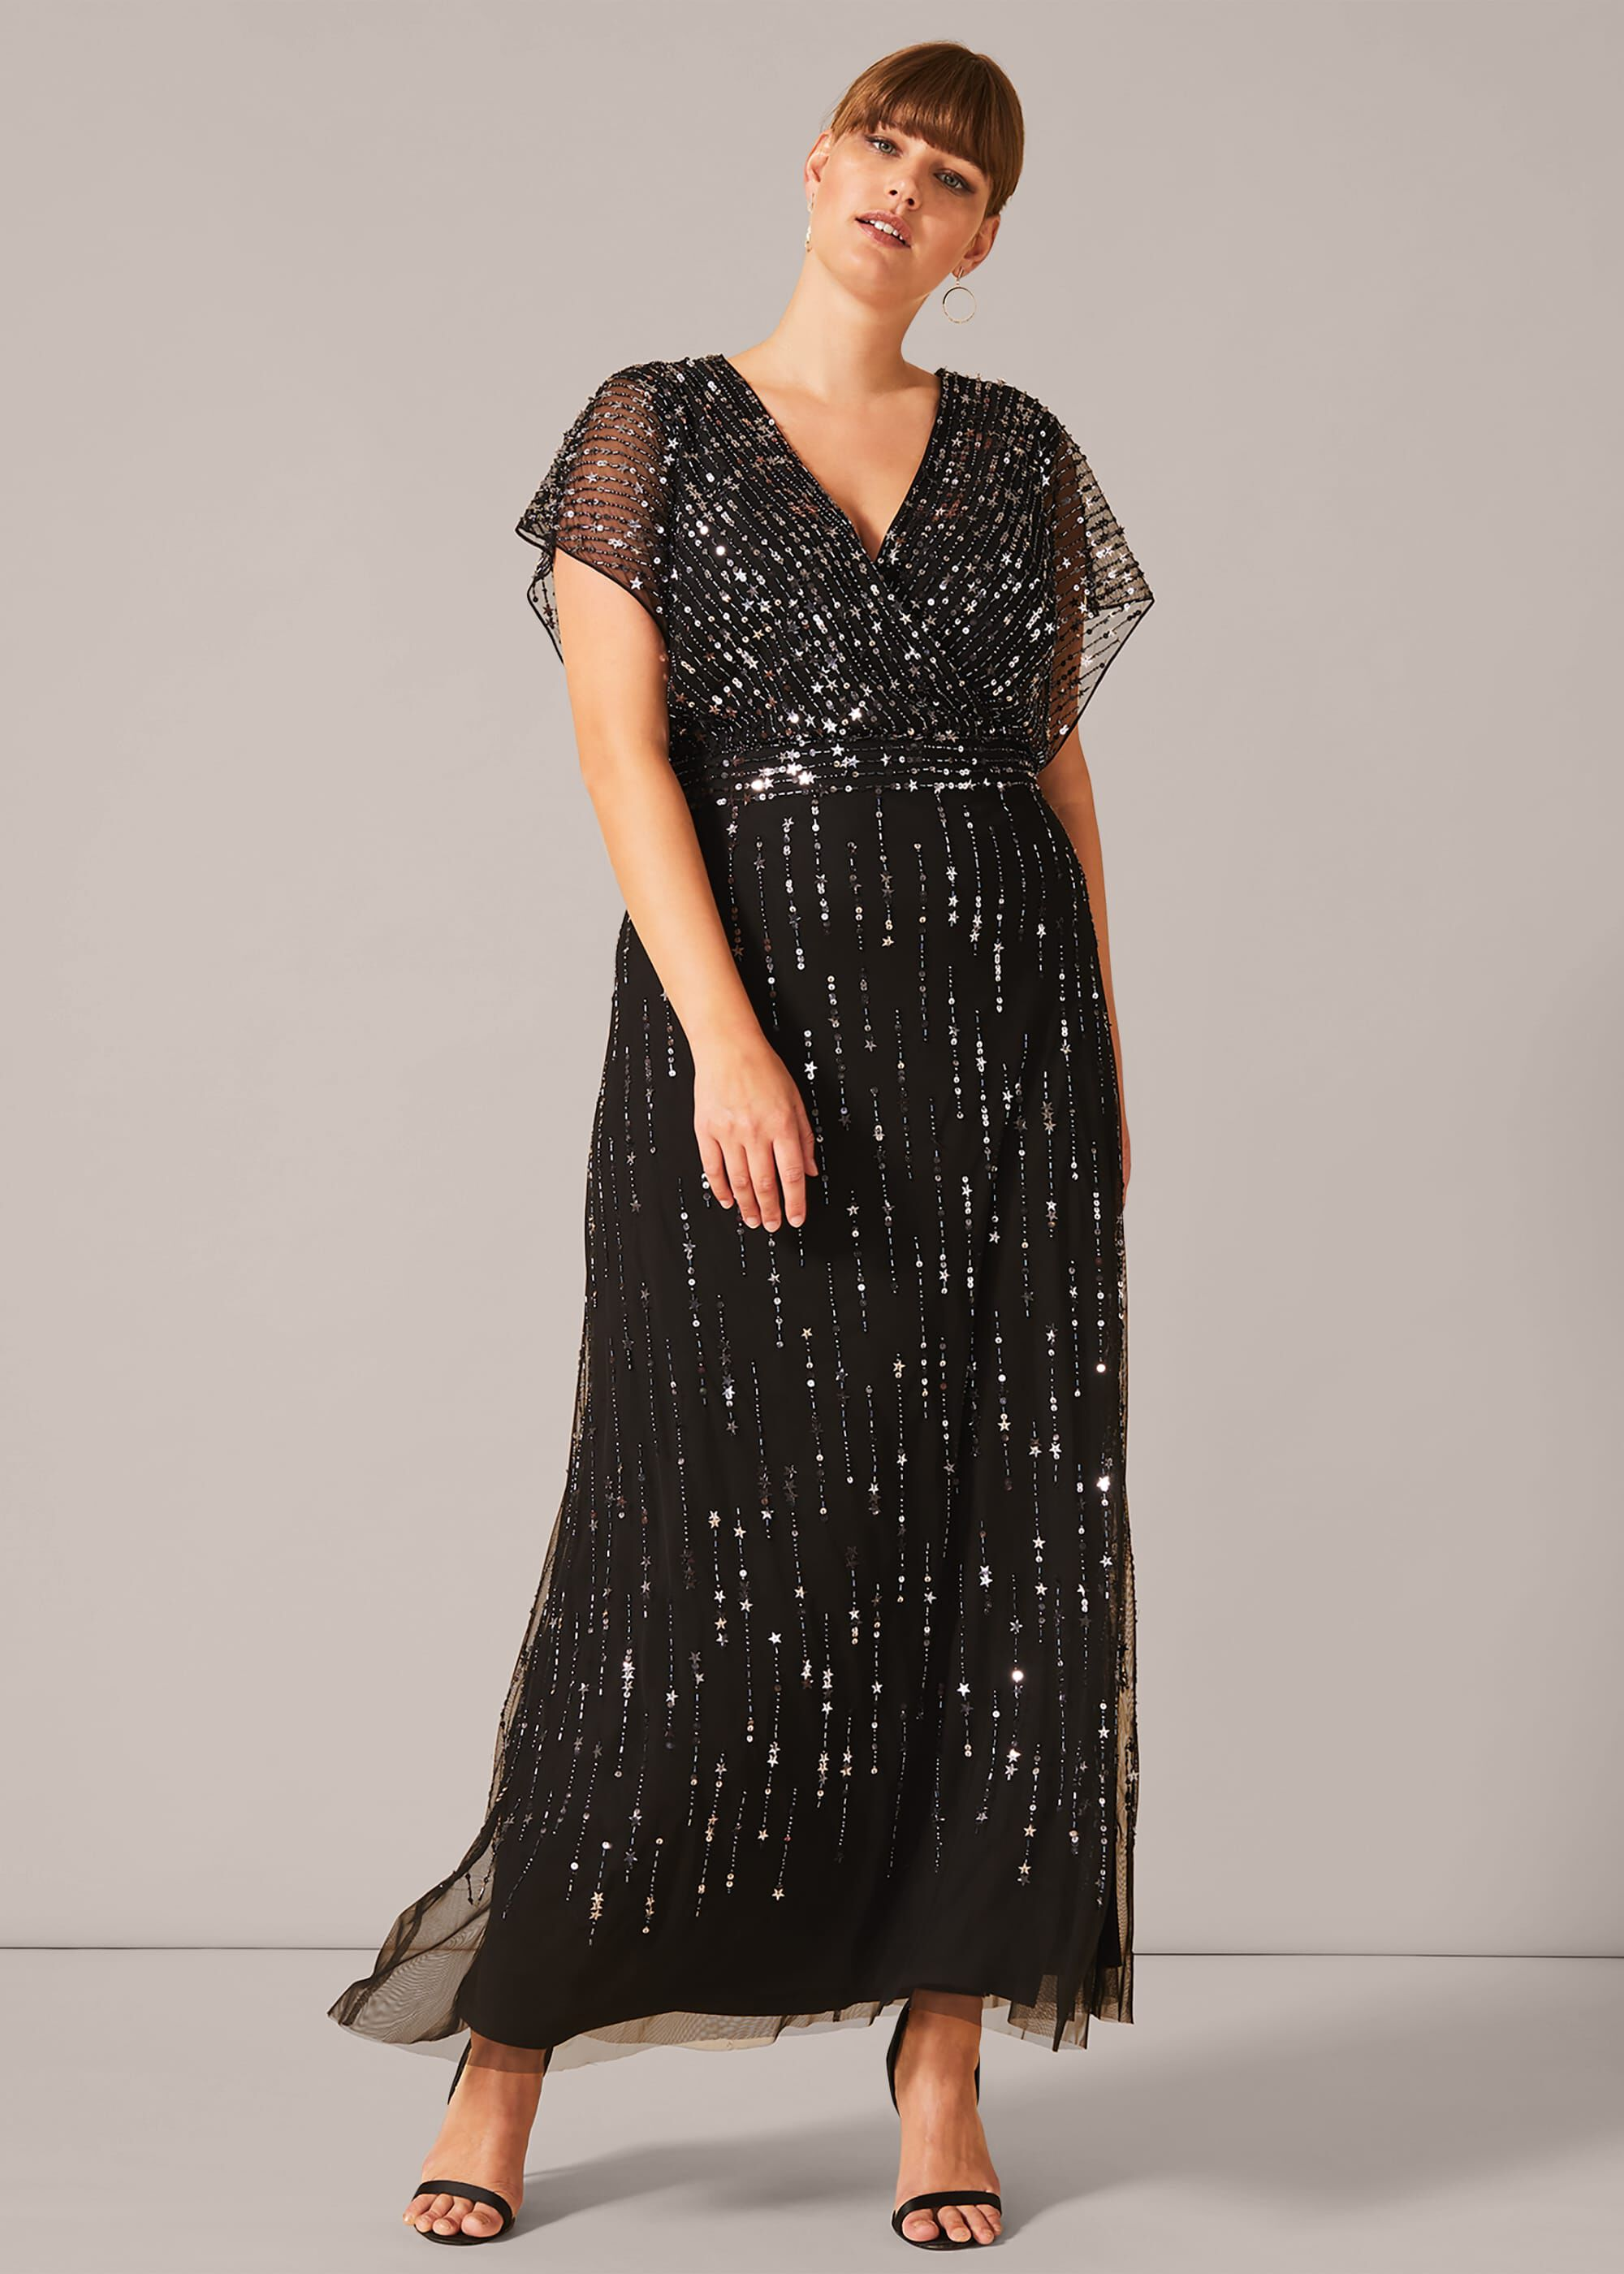 Studio 8 Shante Sequin Maxi Dress, Black, Maxi, Occasion Dress